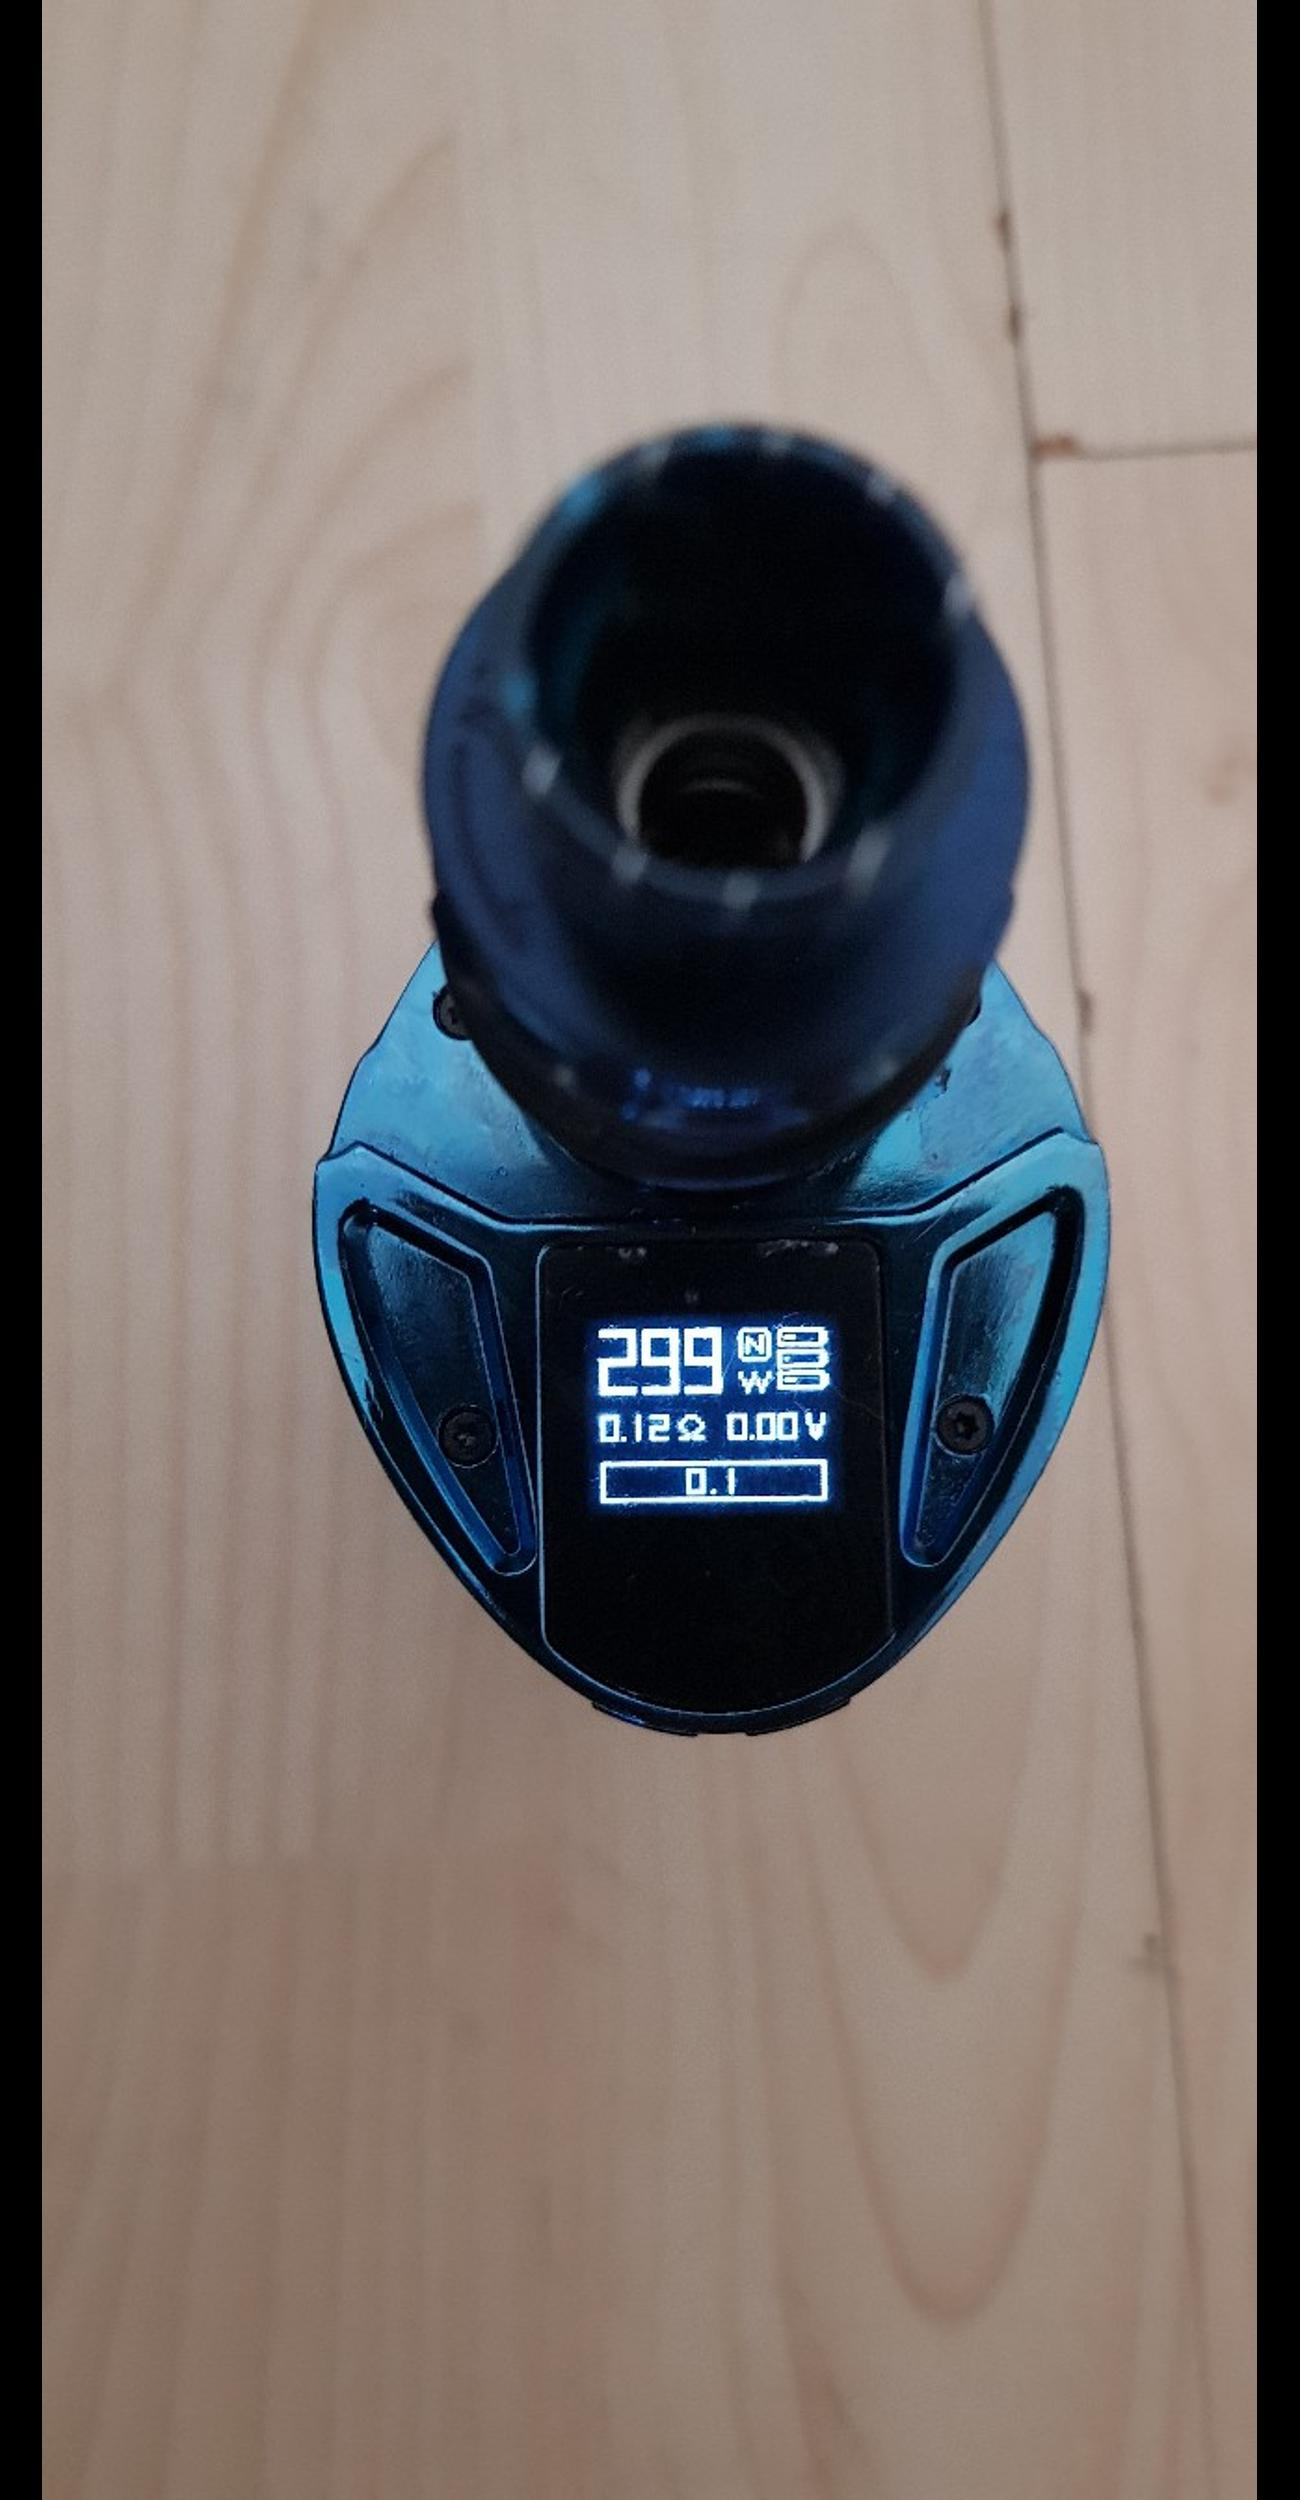 Smok T-Priv 3 300w kit in CO13 Tendring for £40 00 for sale - Shpock